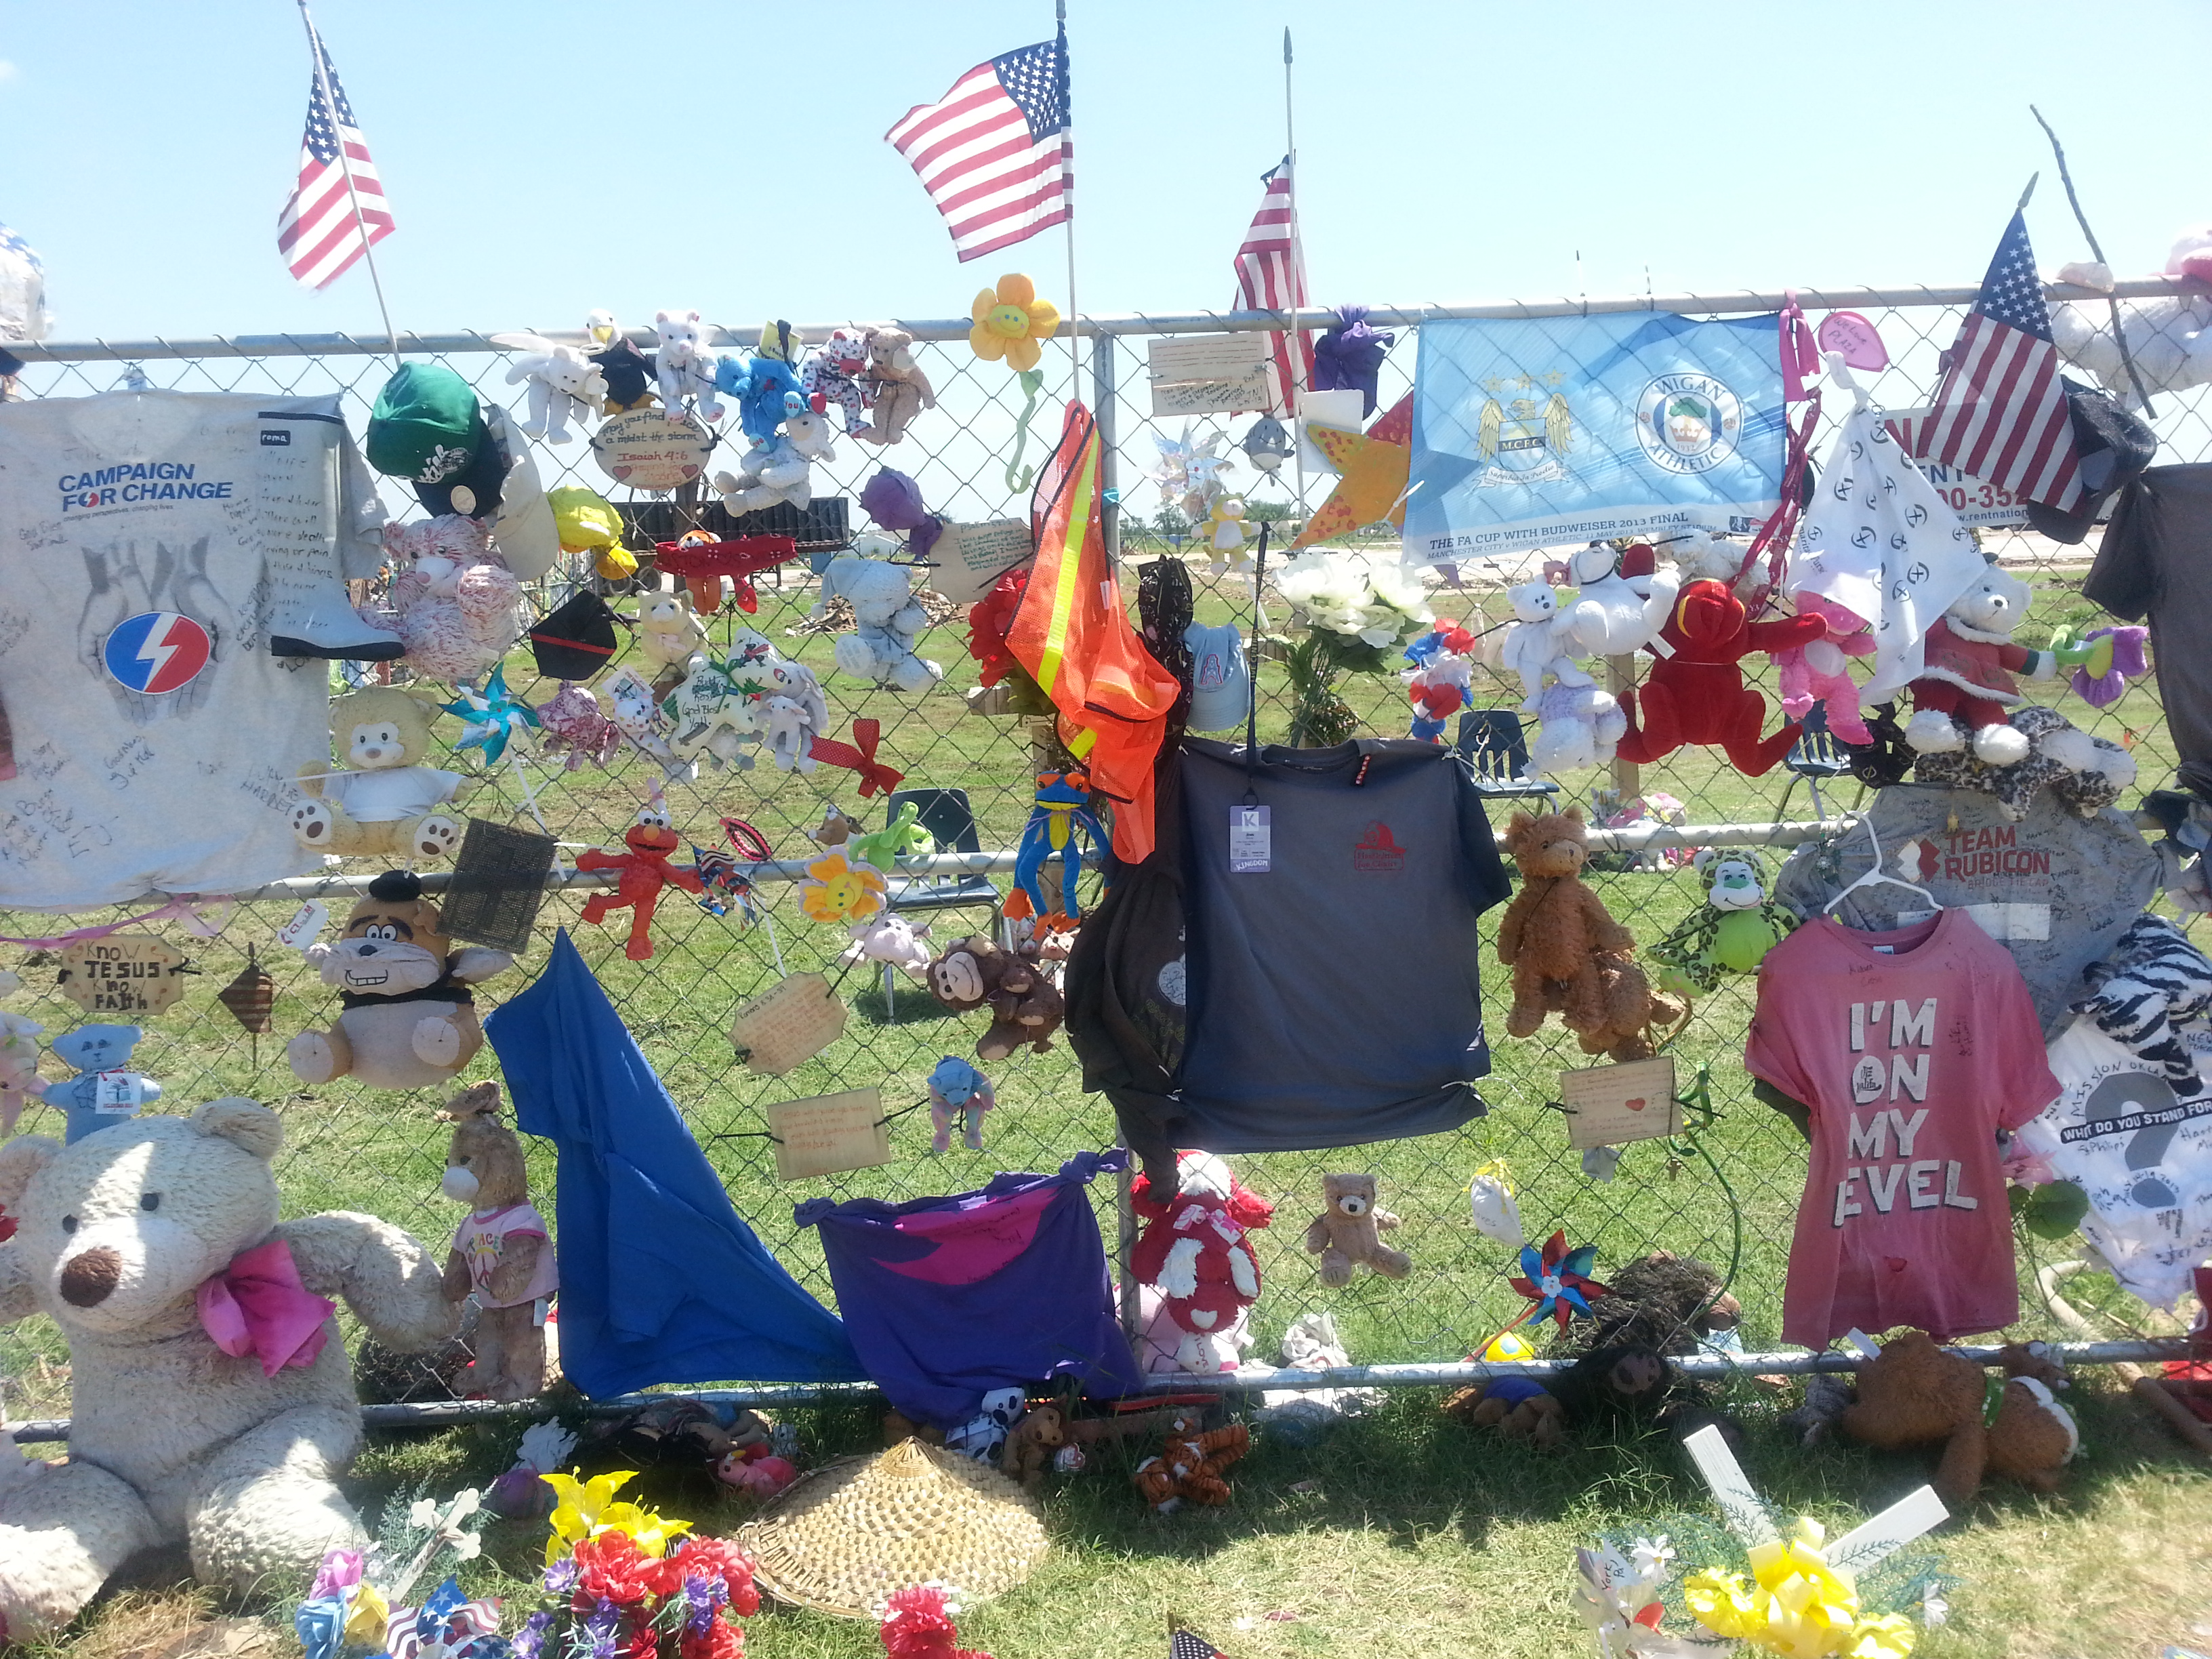 the fence around the school site. So many notes, flags, toys, etc.